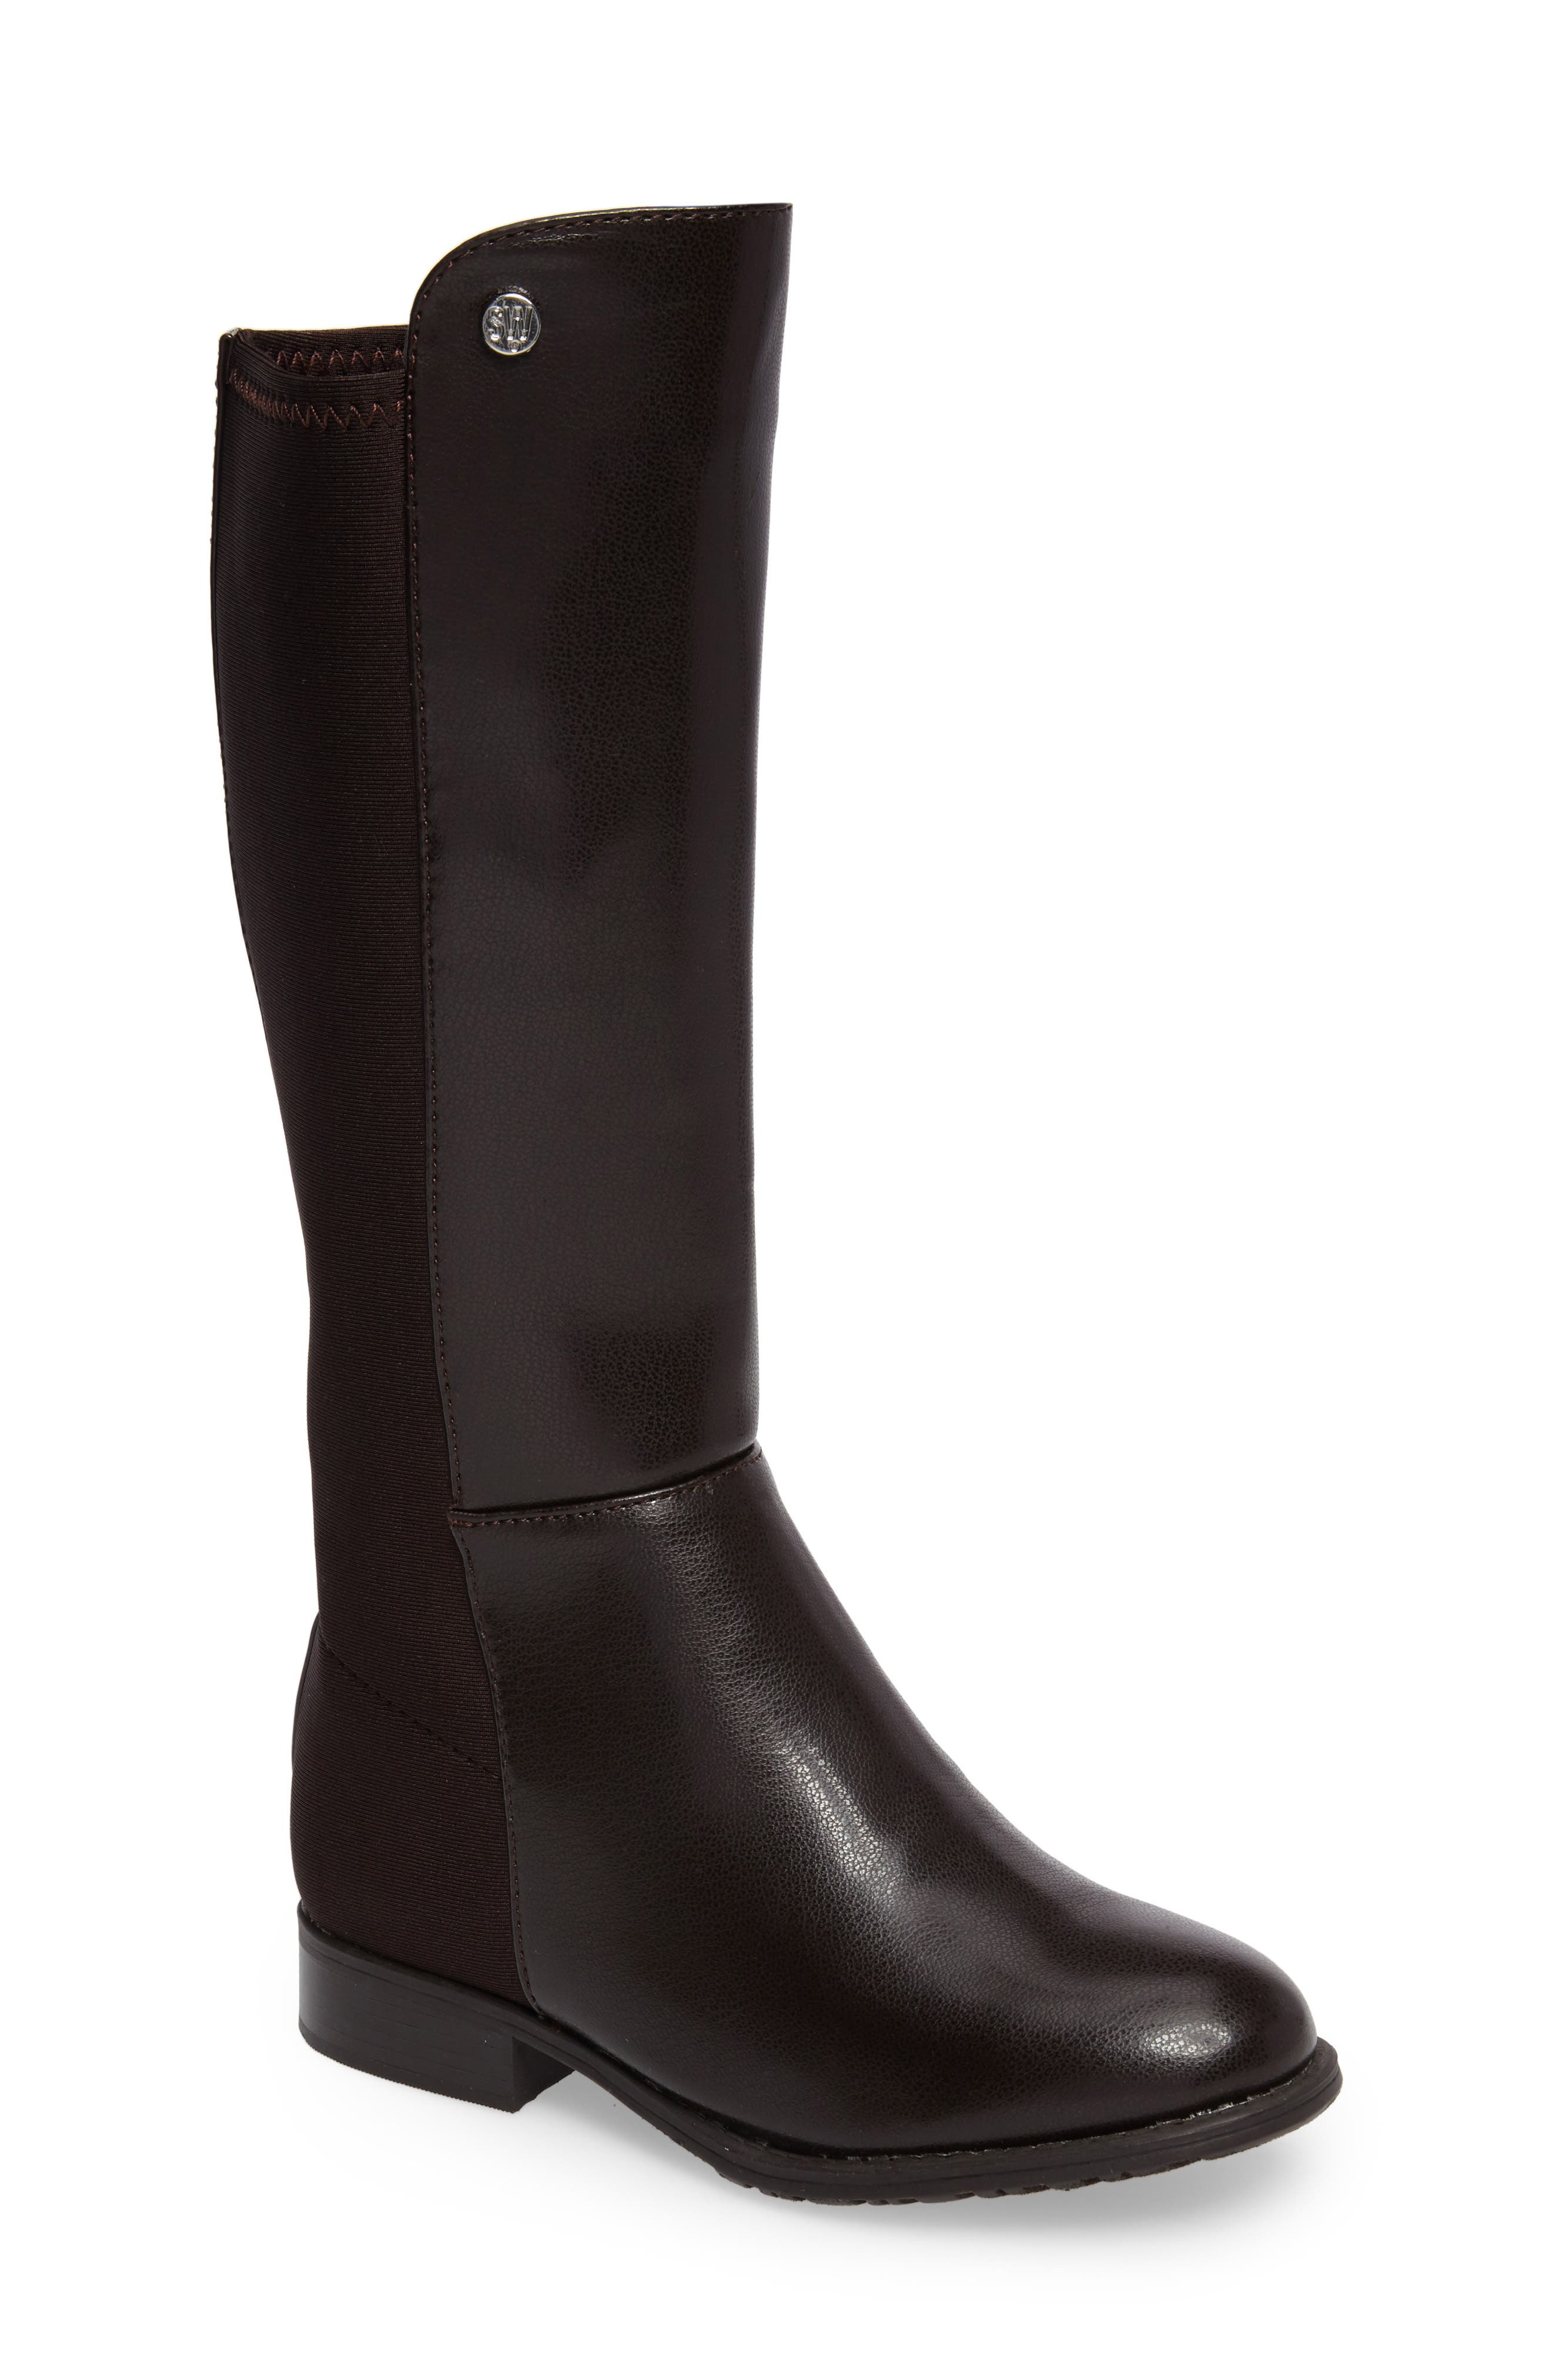 Stuart Weitzman 5050 Tall Riding Boot (Toddler, Little Kid & Big Kid)